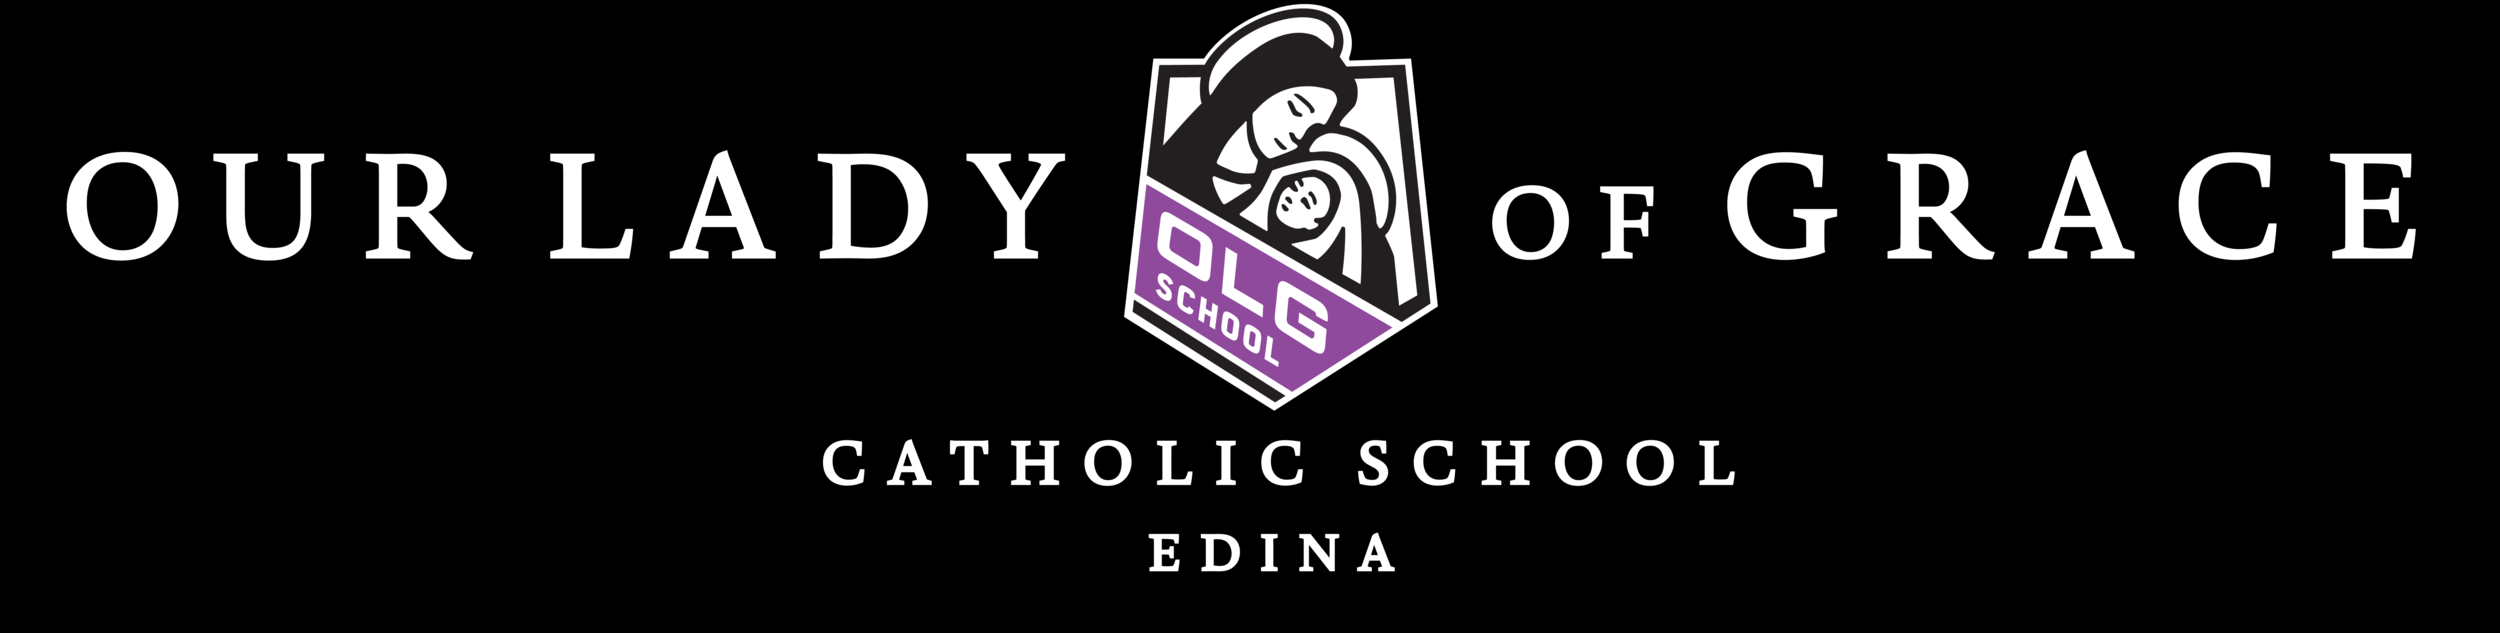 Example: OLG School Logo WHITE Text (Catholic School Edina).png